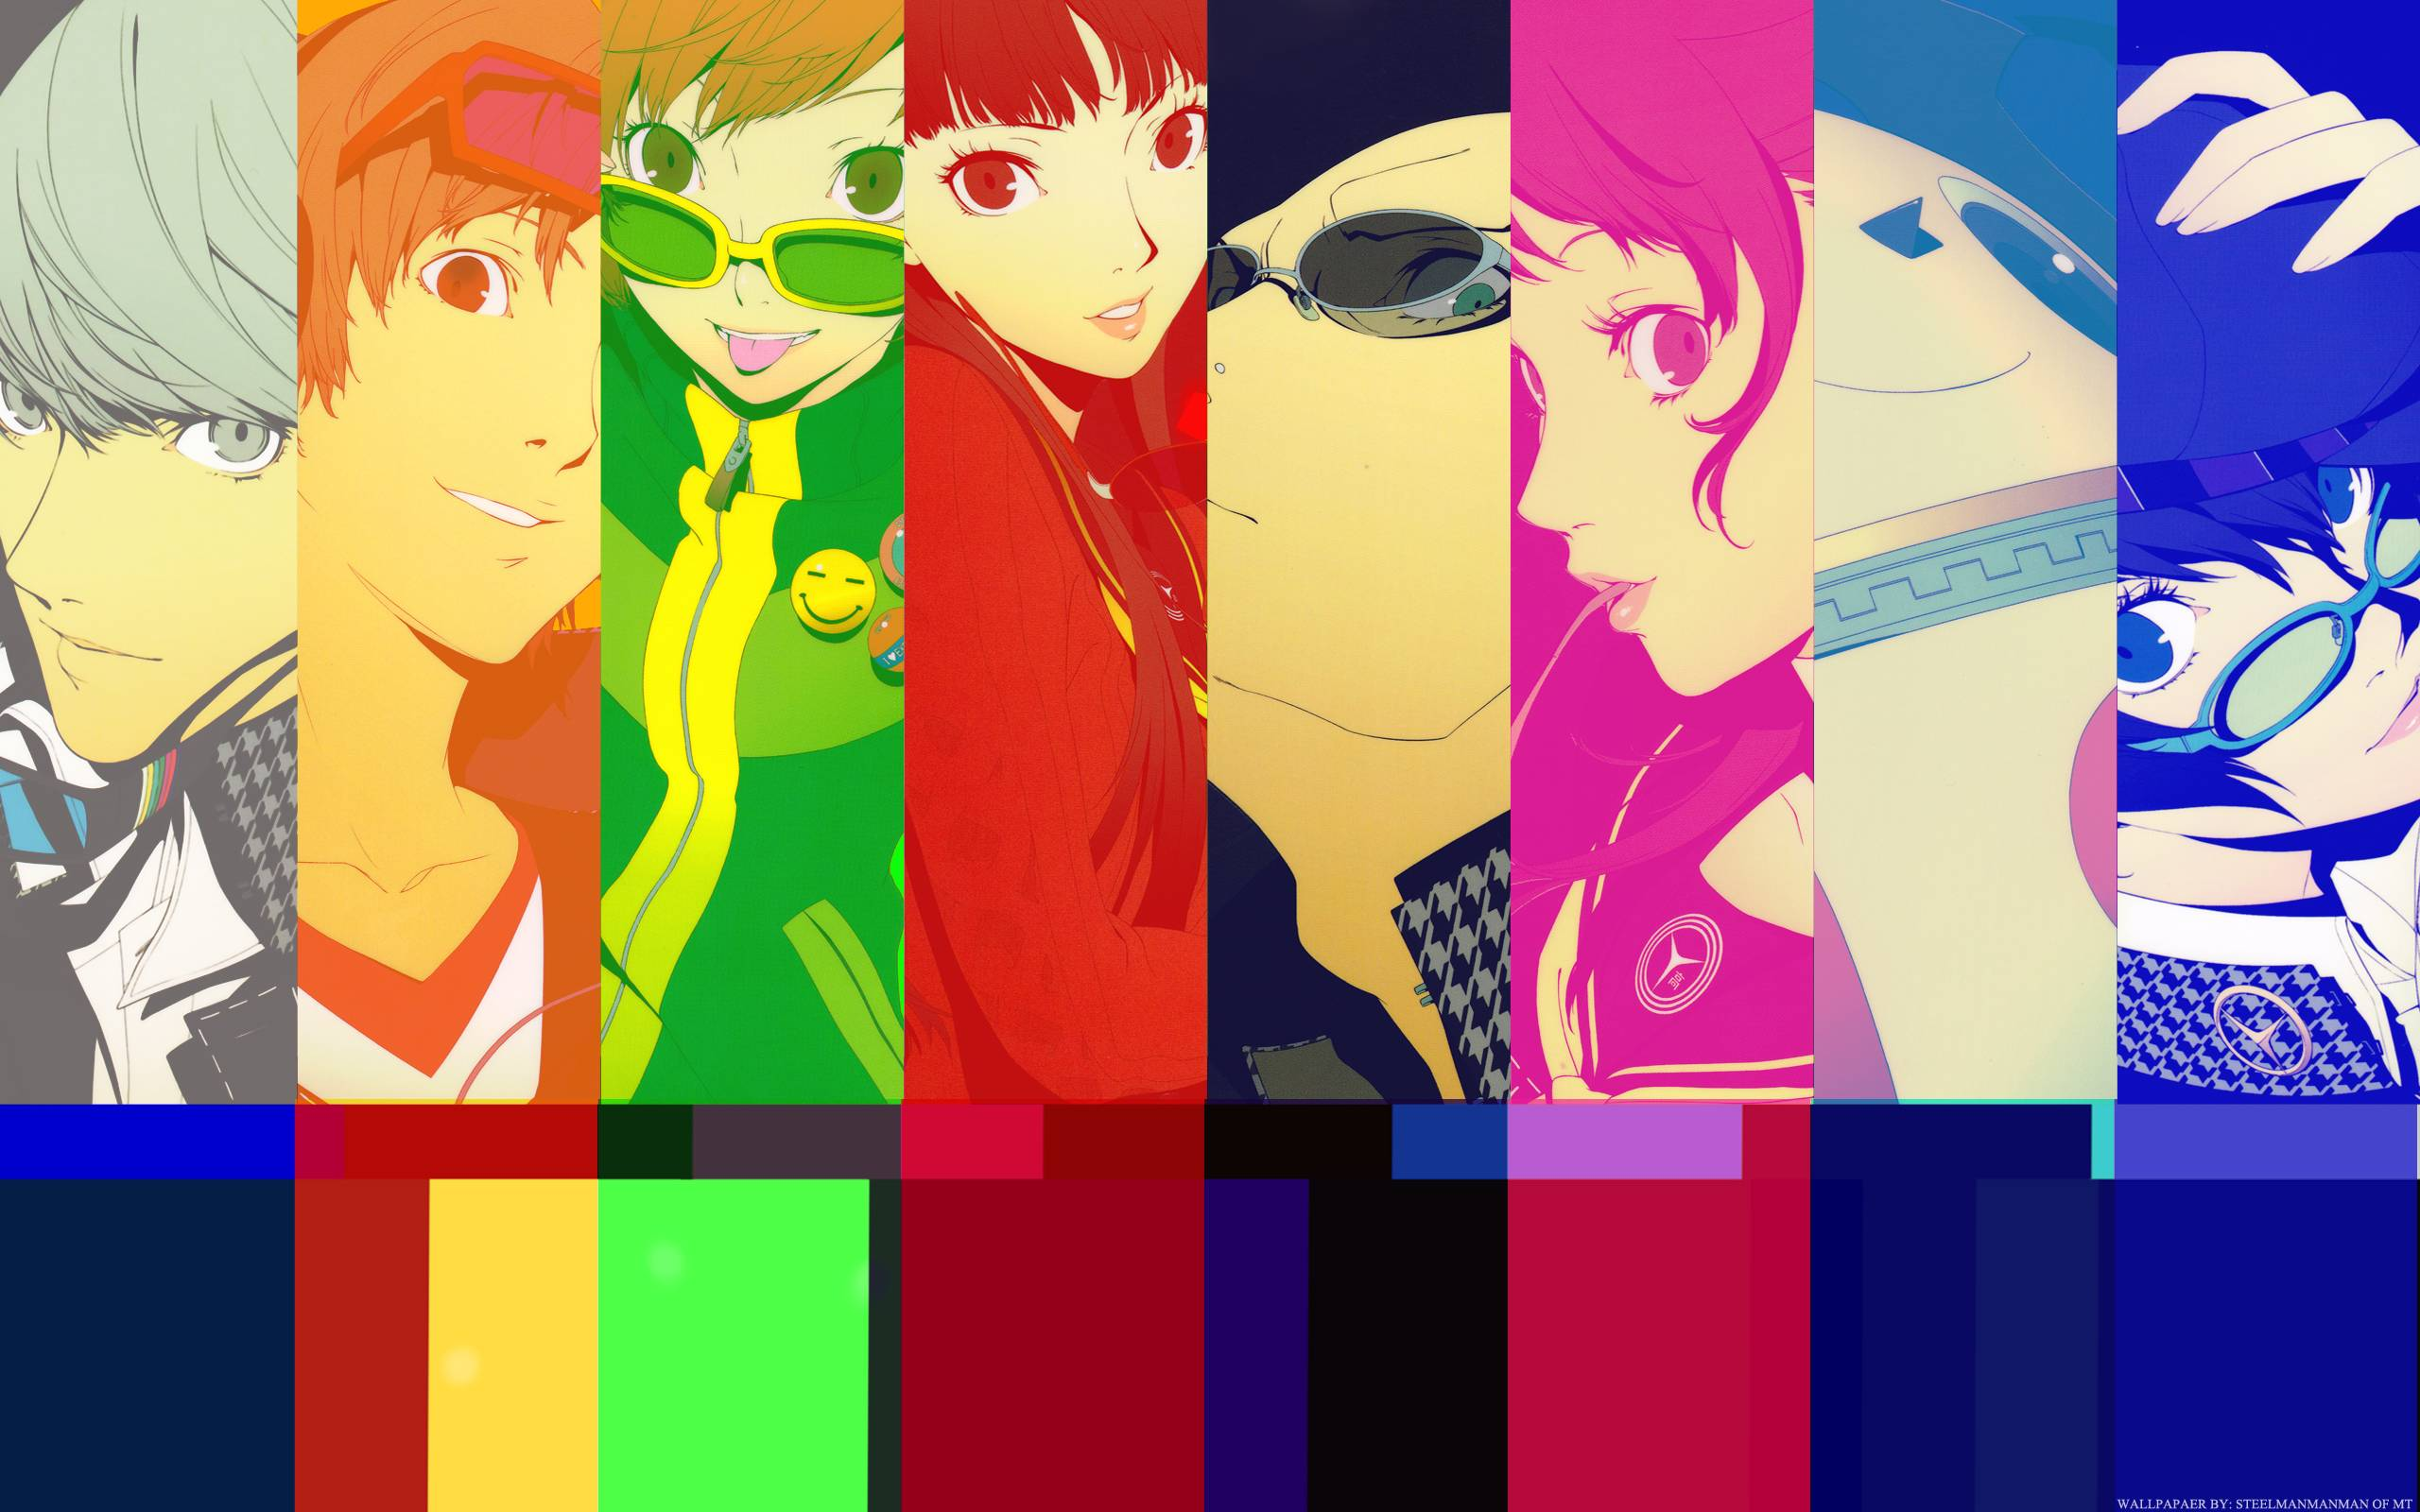 Images For > Persona 4 Golden Wallpaper 1920x1080